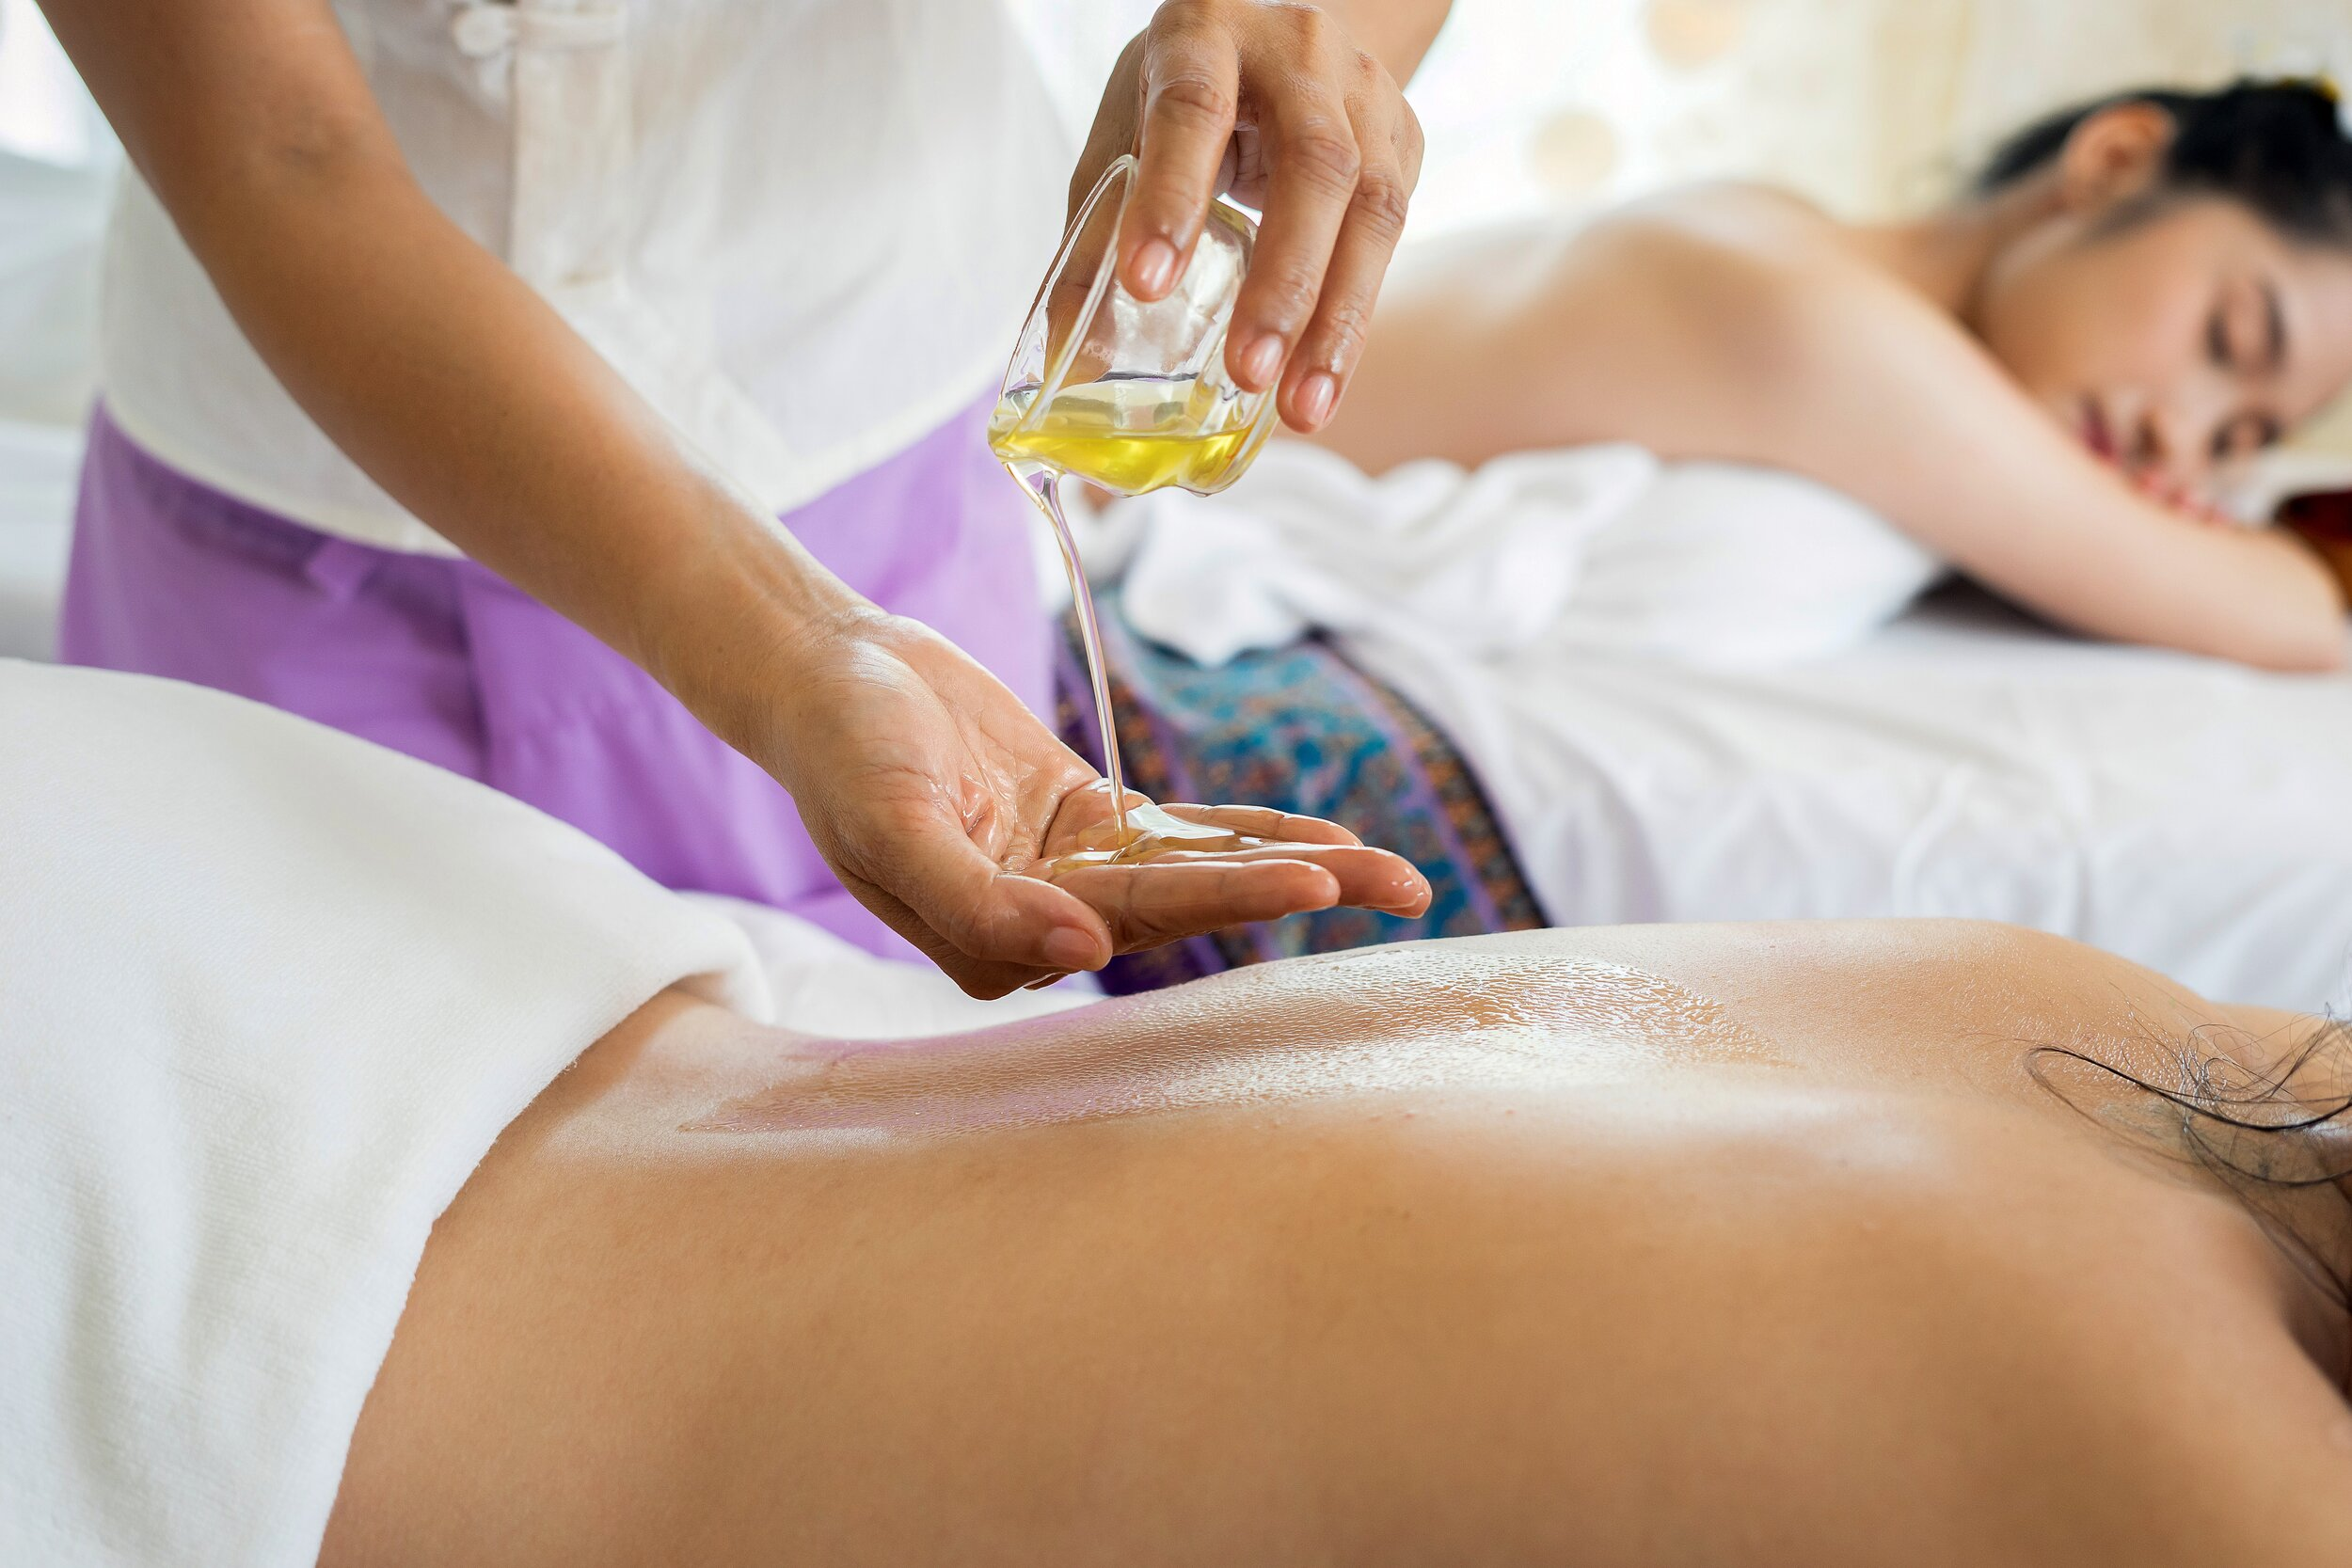 Let's make this aregular thing. - Loved your Melt session? Let's do it again sometime. Save money, de-stress and enjoy thelong-lasting benefits of monthly massage and facial treatments with a membershipat Melt Day Spa, Keller, TX.